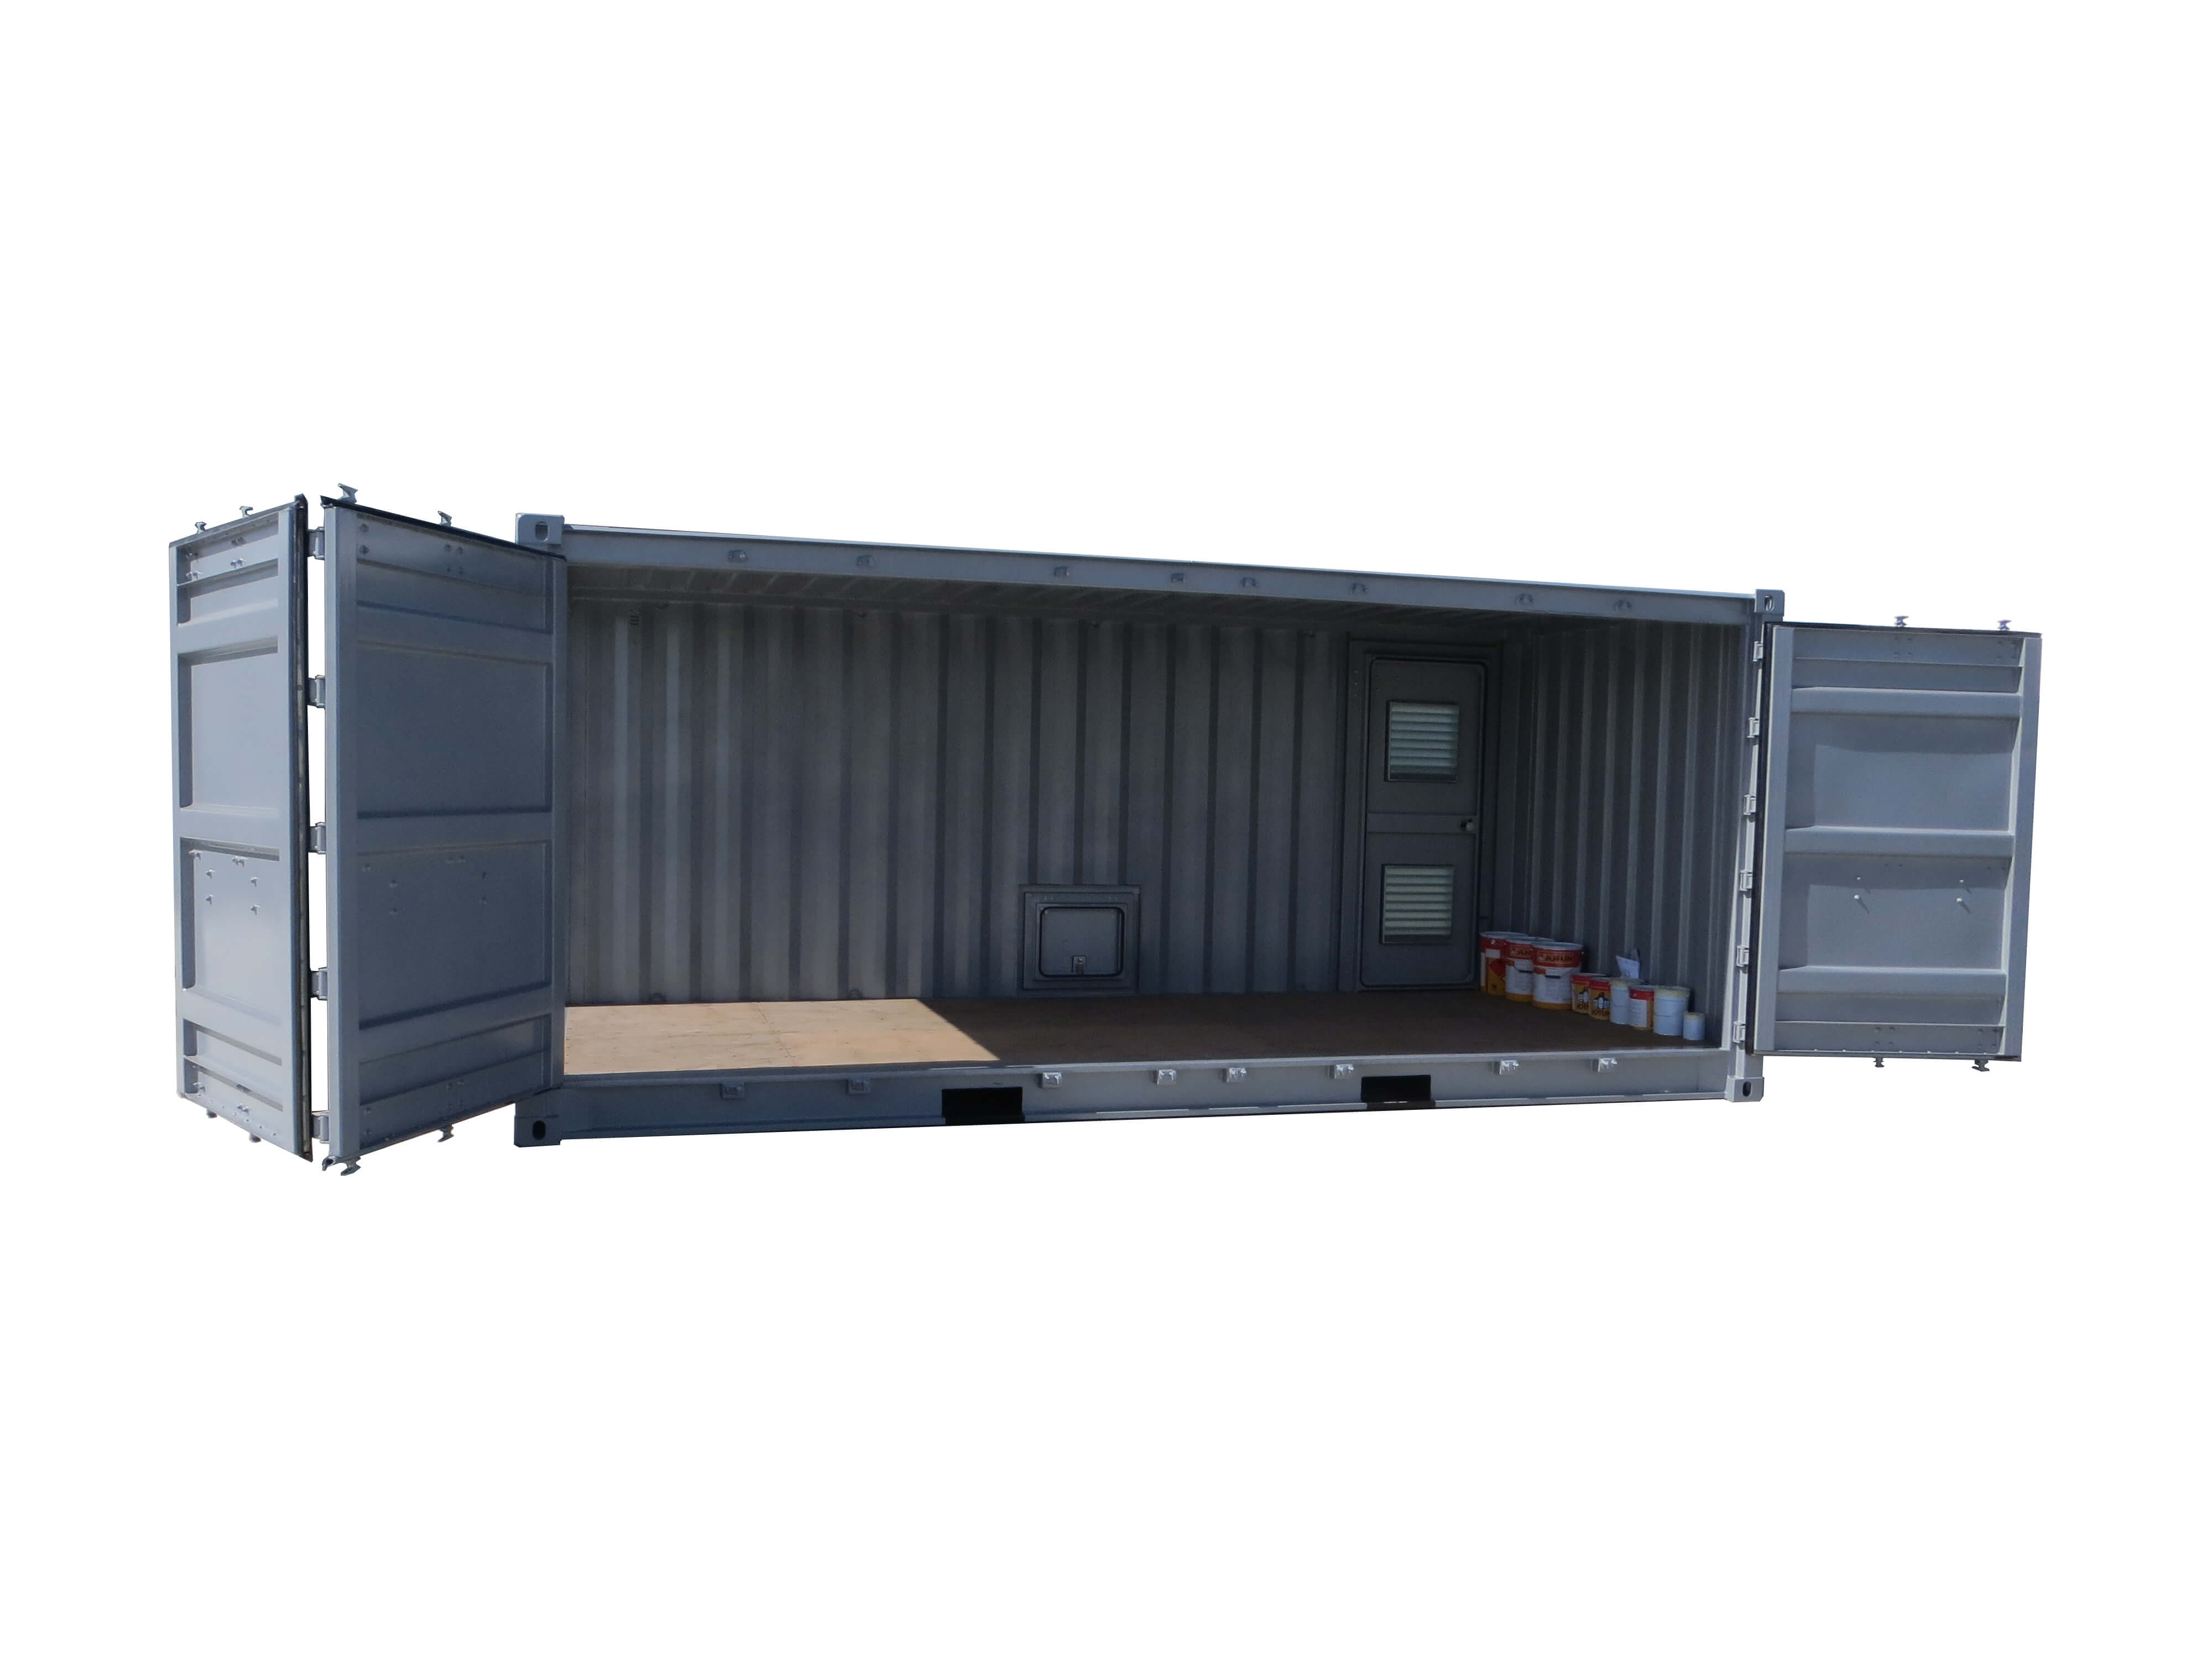 oxymontage our open side containers waterproof and robust. Black Bedroom Furniture Sets. Home Design Ideas